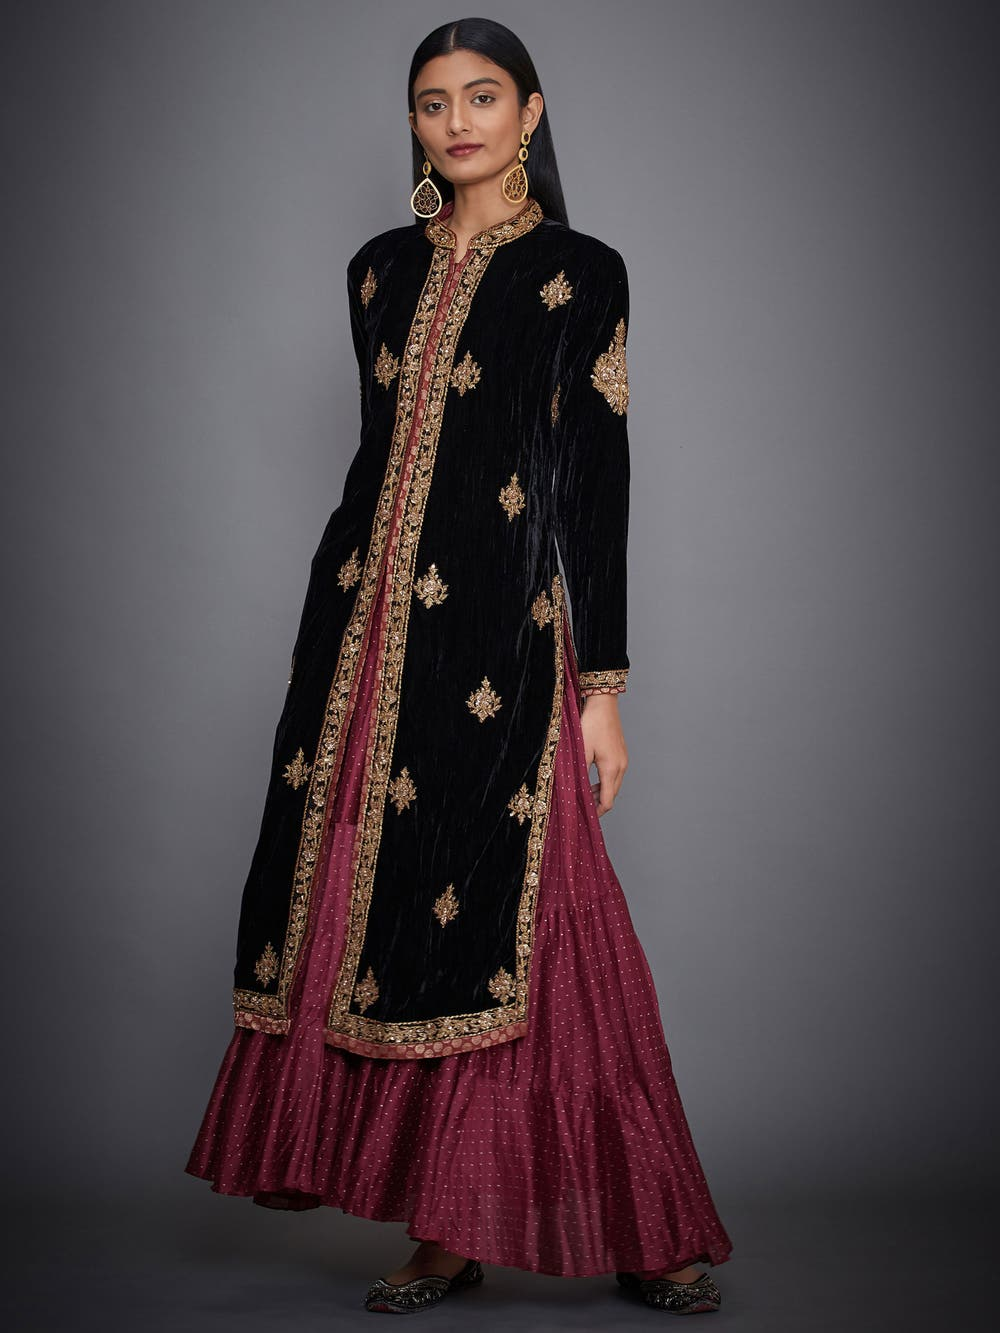 Black & Burgundy Embroidered Dress With Jacket